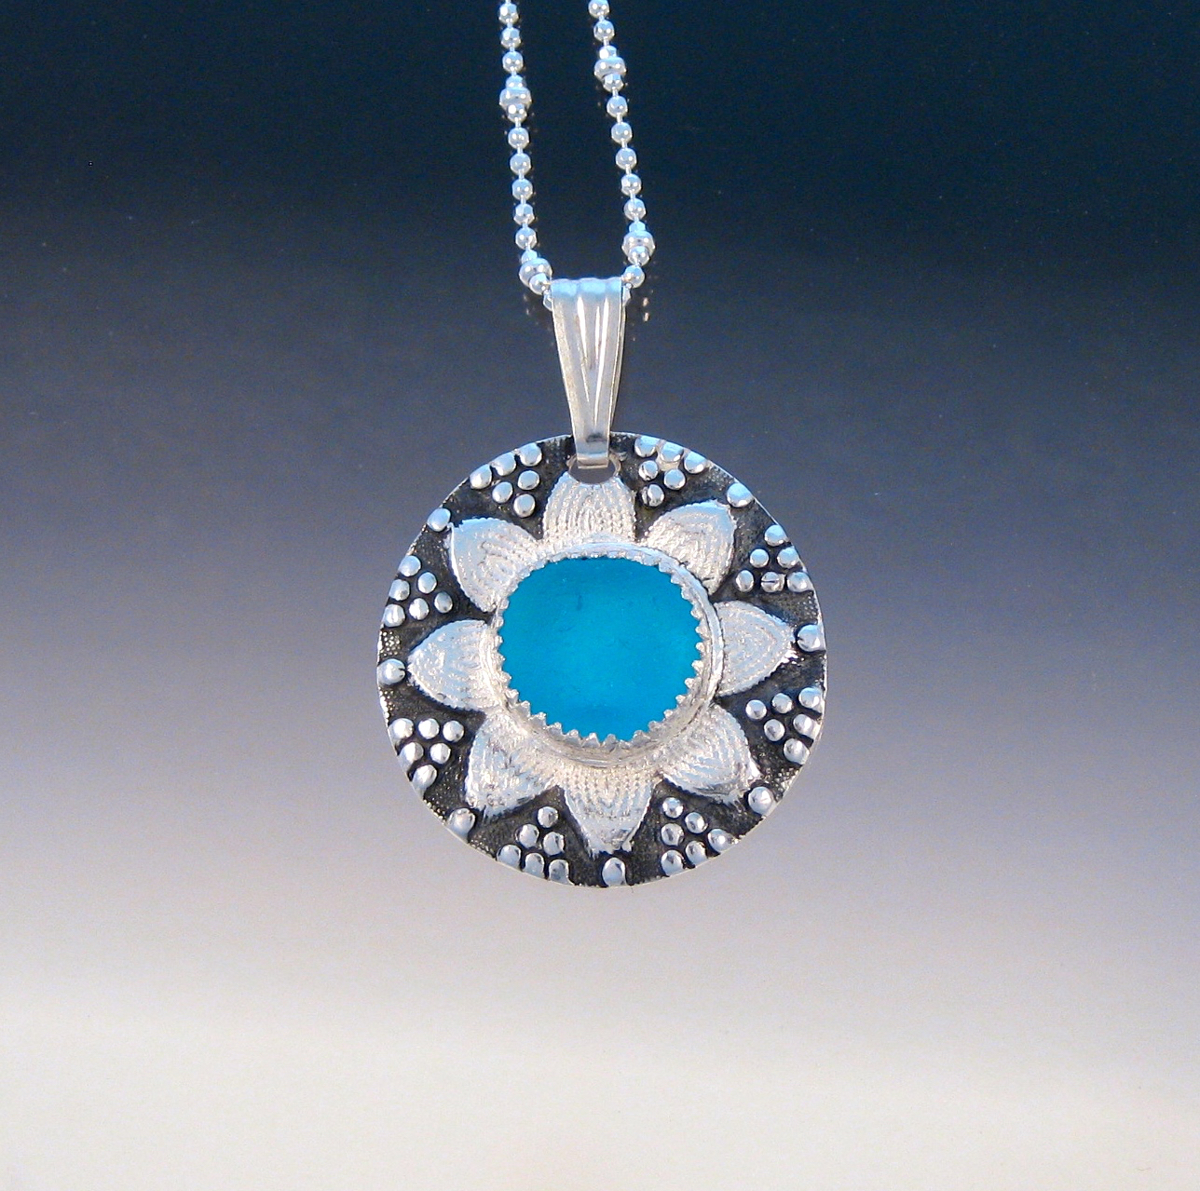 P4468 - Amazing Turquoise sea glass button pendant (large view)